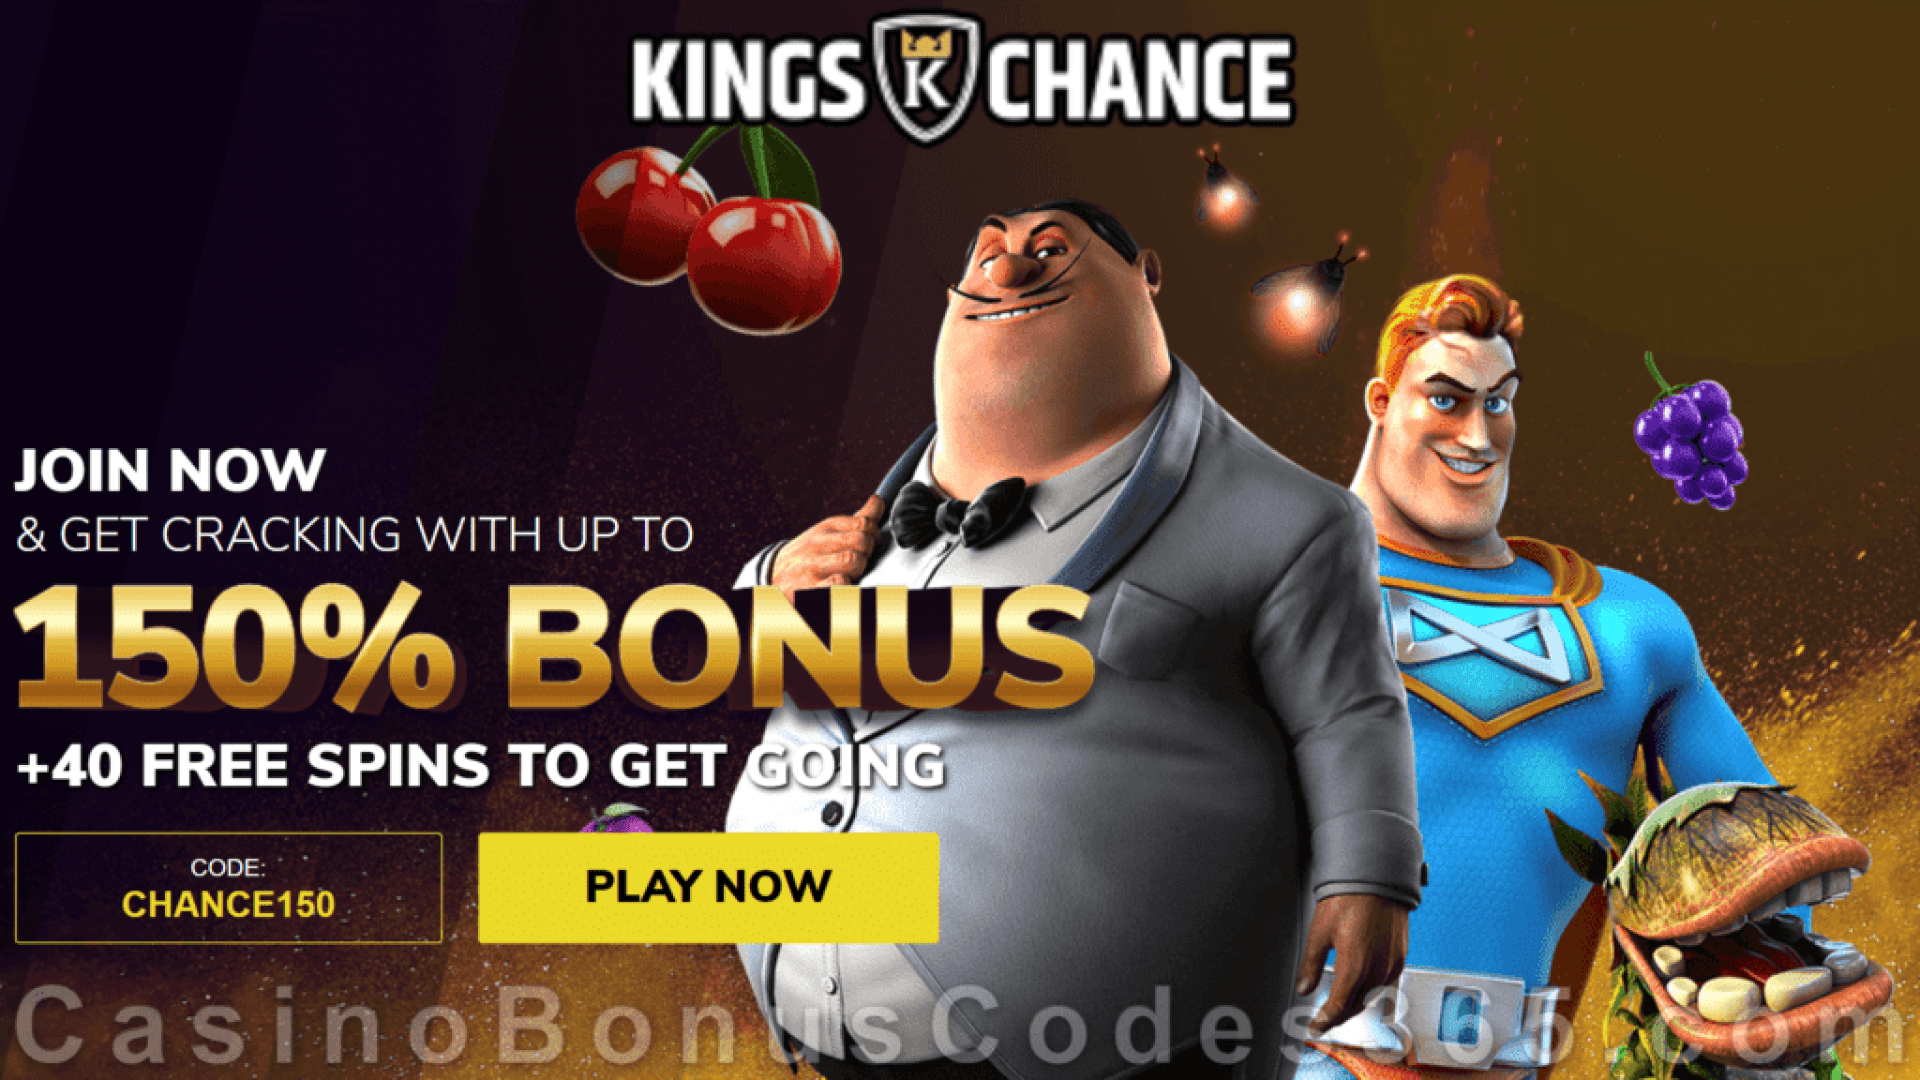 King Chance 150% Match 40 FREE Spins Bonus Package Betsoft